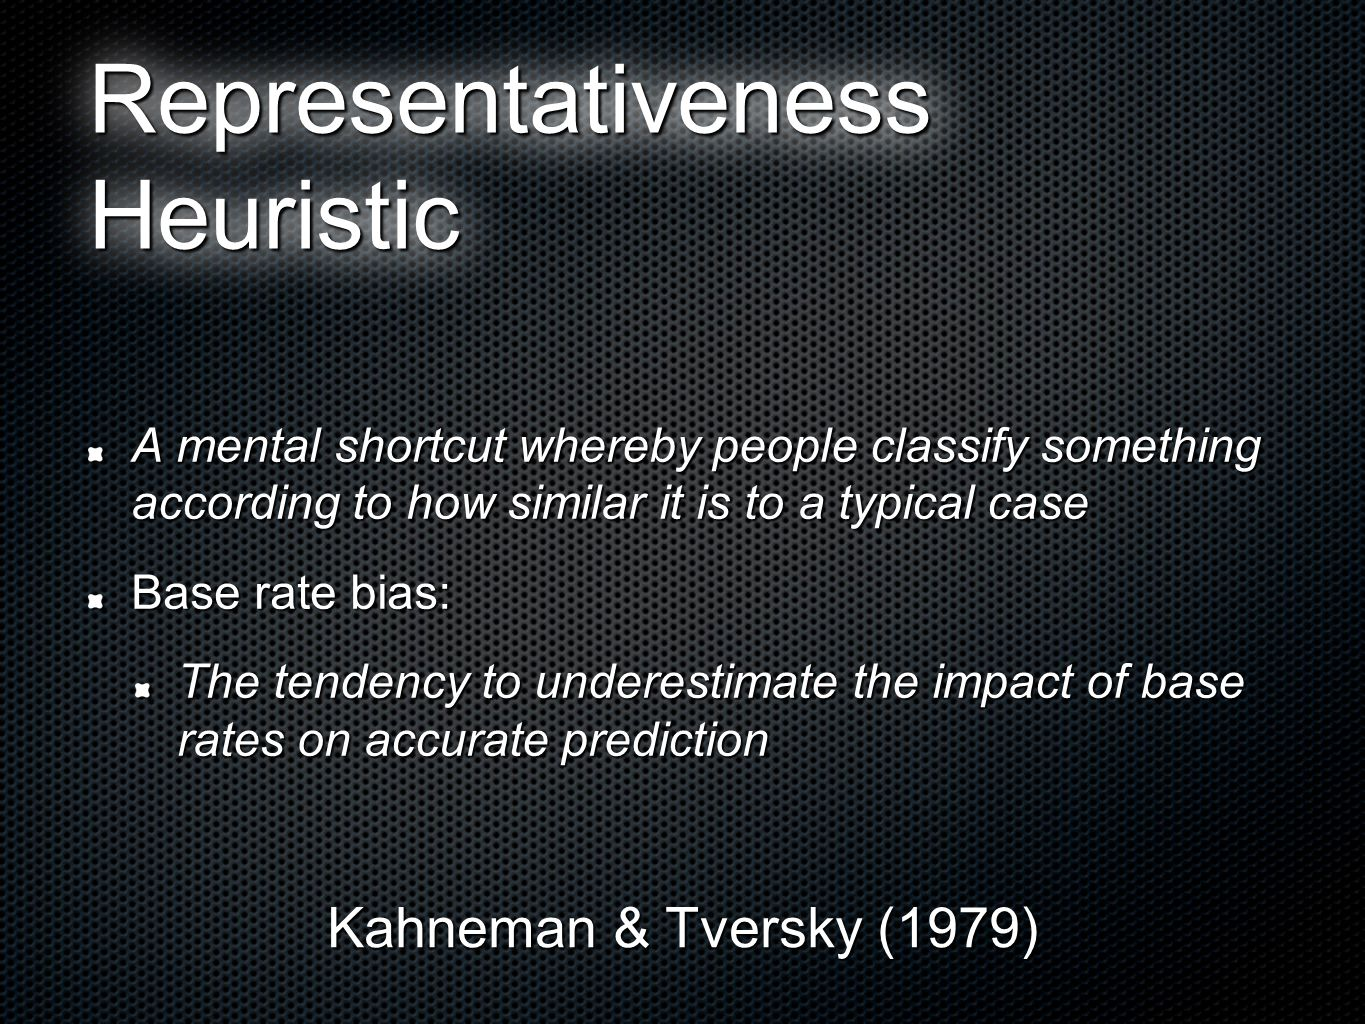 Representativeness Heuristic A mental shortcut whereby people classify something according to how similar it is to a typical case Base rate bias: The tendency to underestimate the impact of base rates on accurate prediction Kahneman & Tversky (1979)